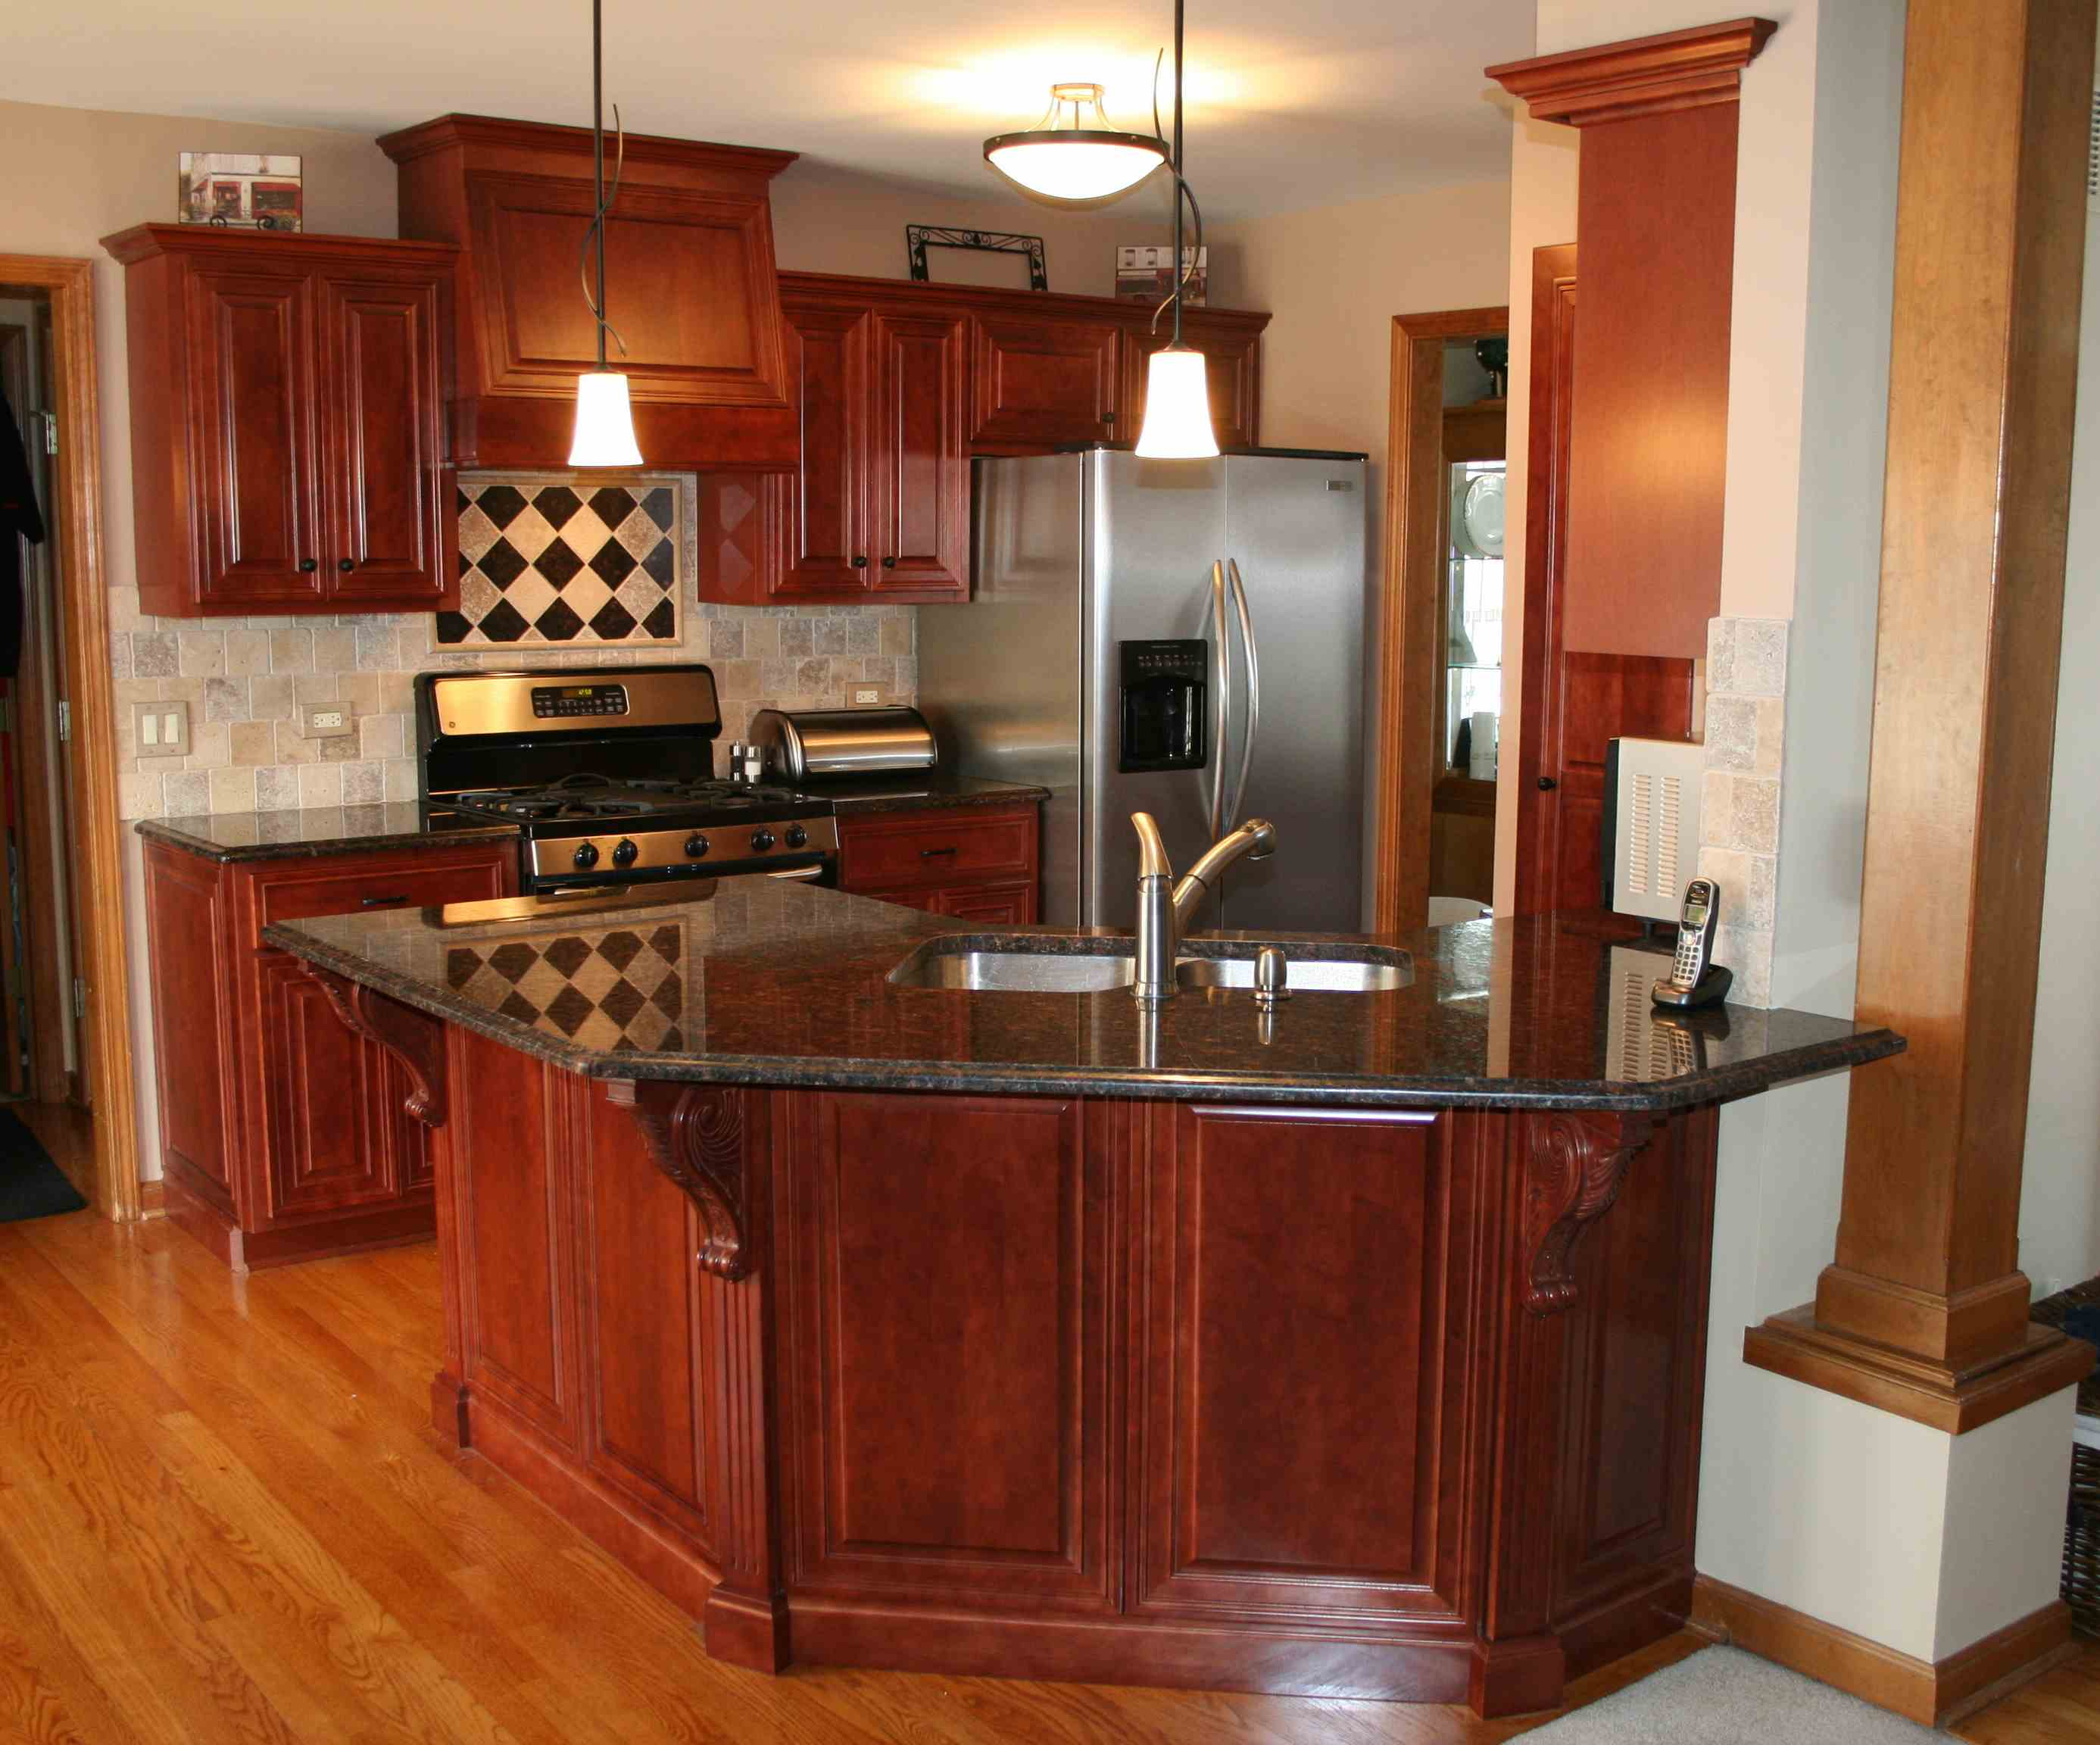 based kitchen floor plan with folded island and refinished cabinets refacing